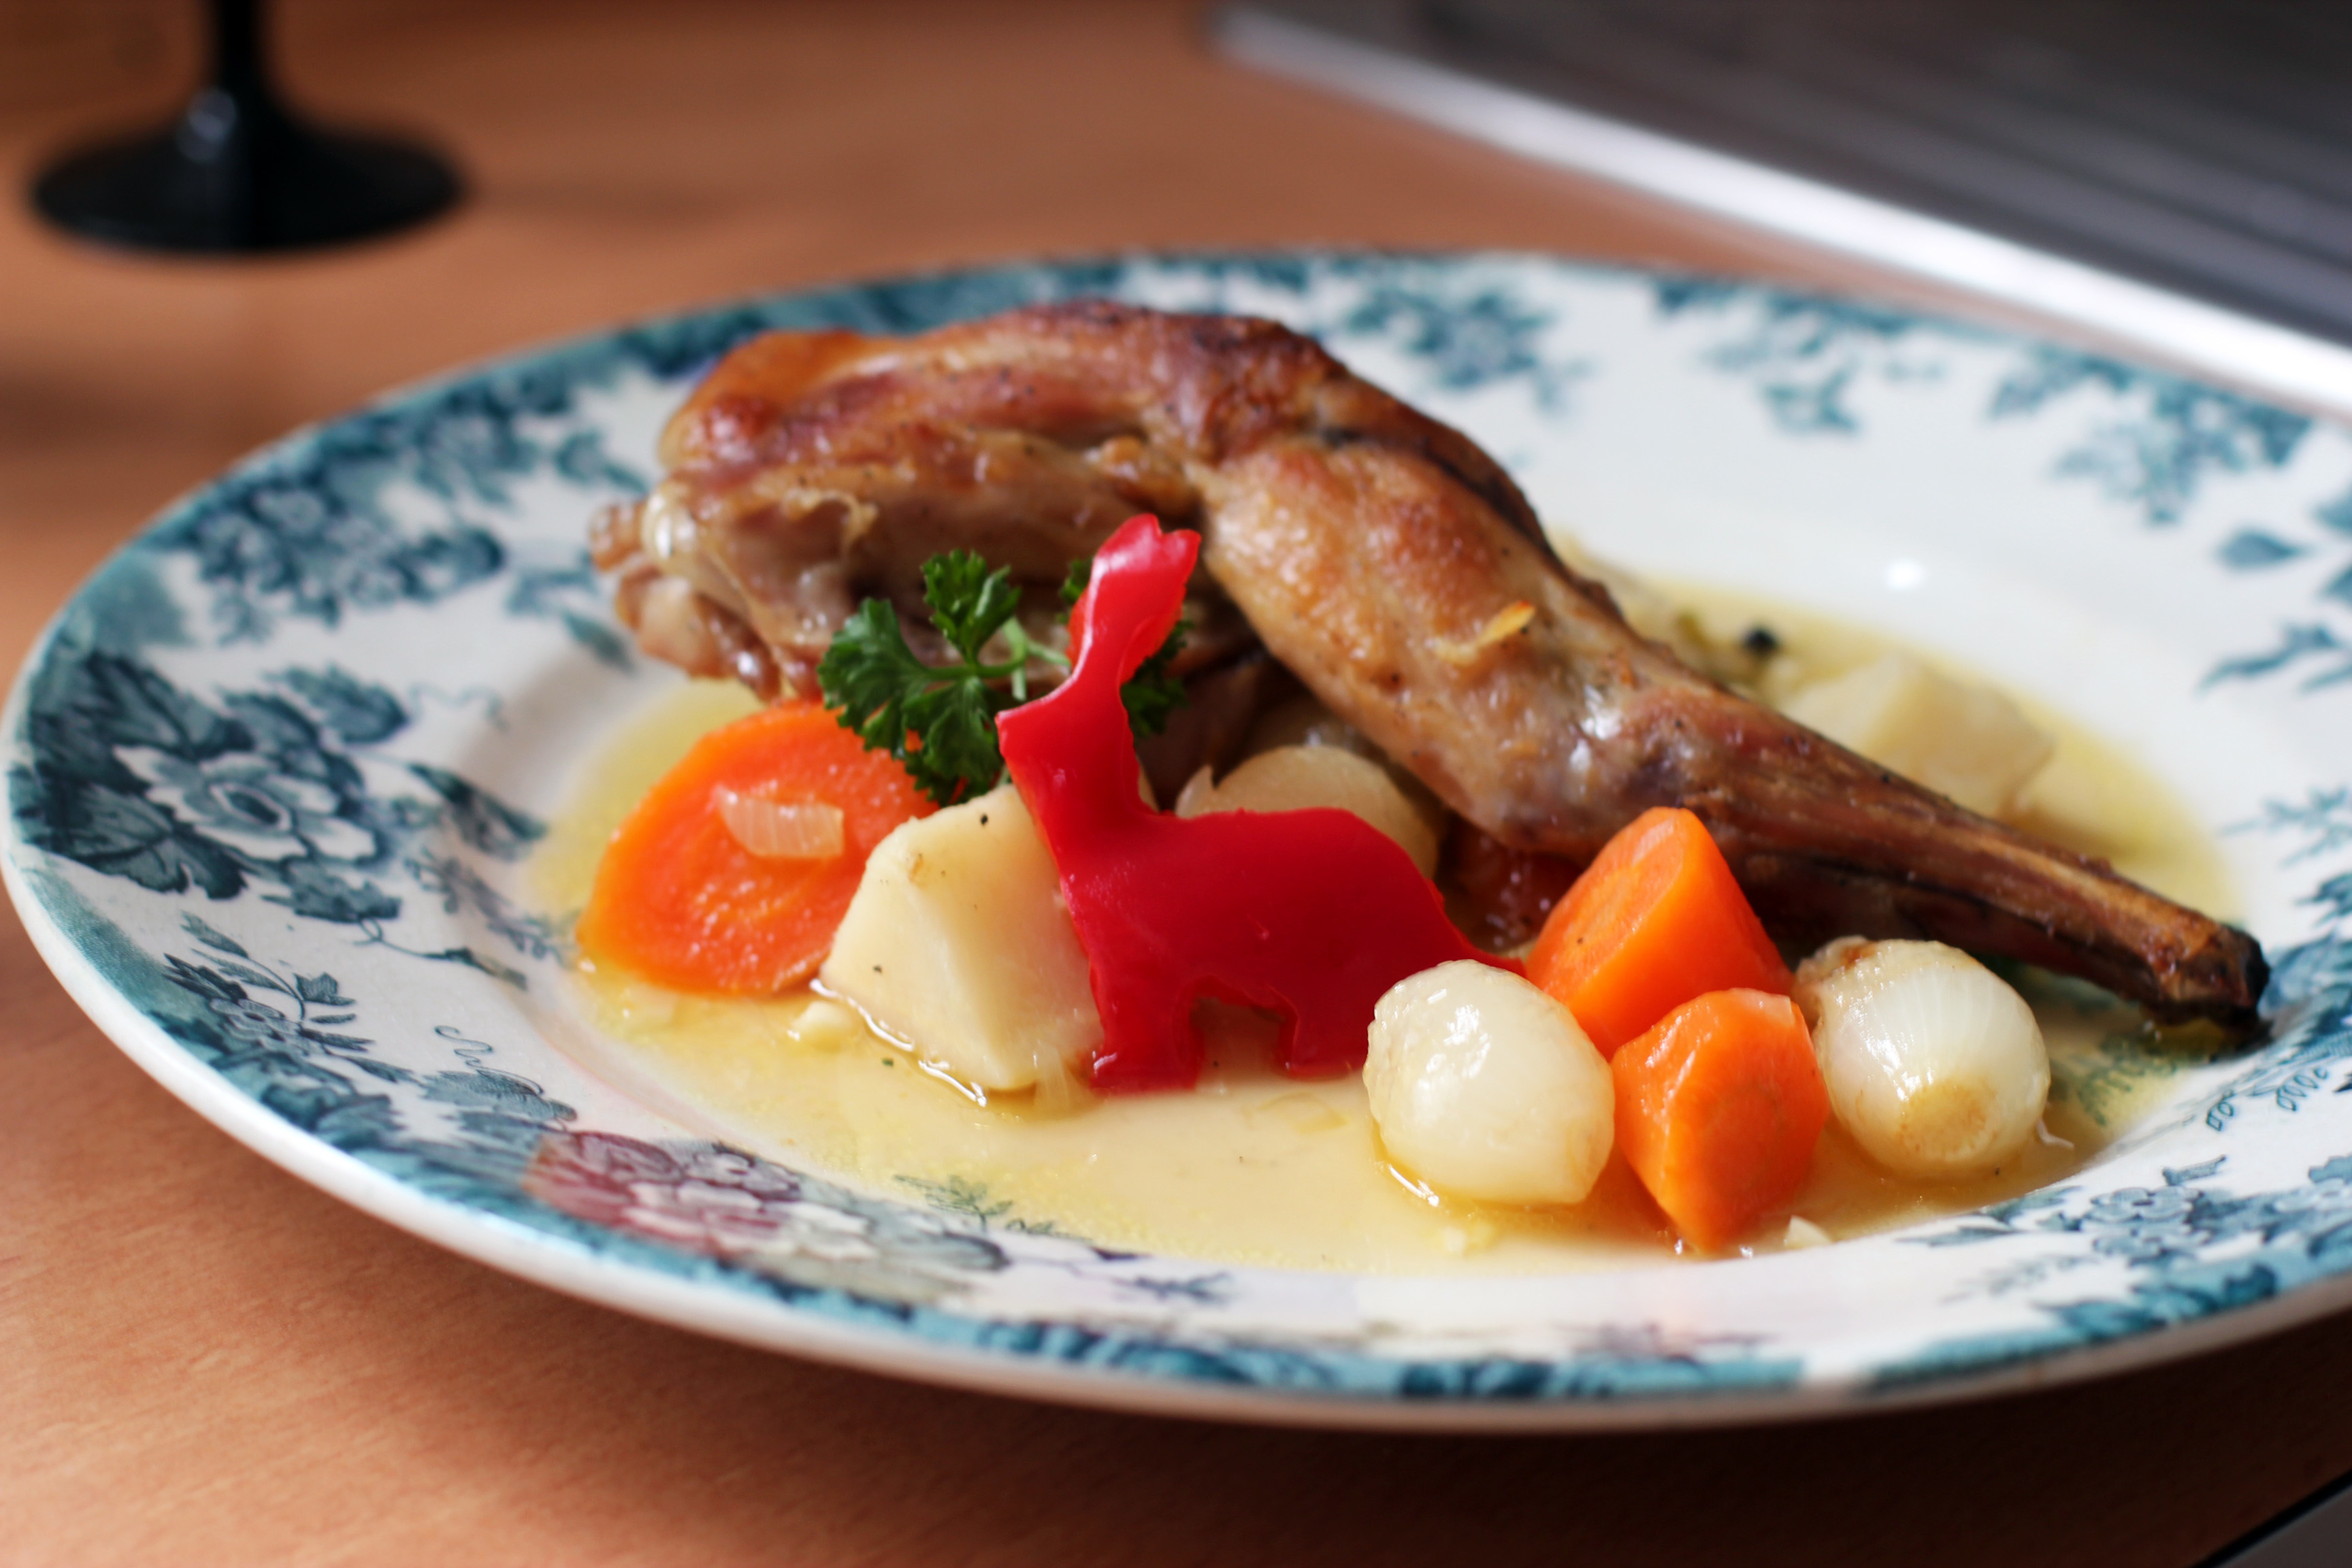 Braised Rabbit with Parsnips, Carrots and Pearl Onions